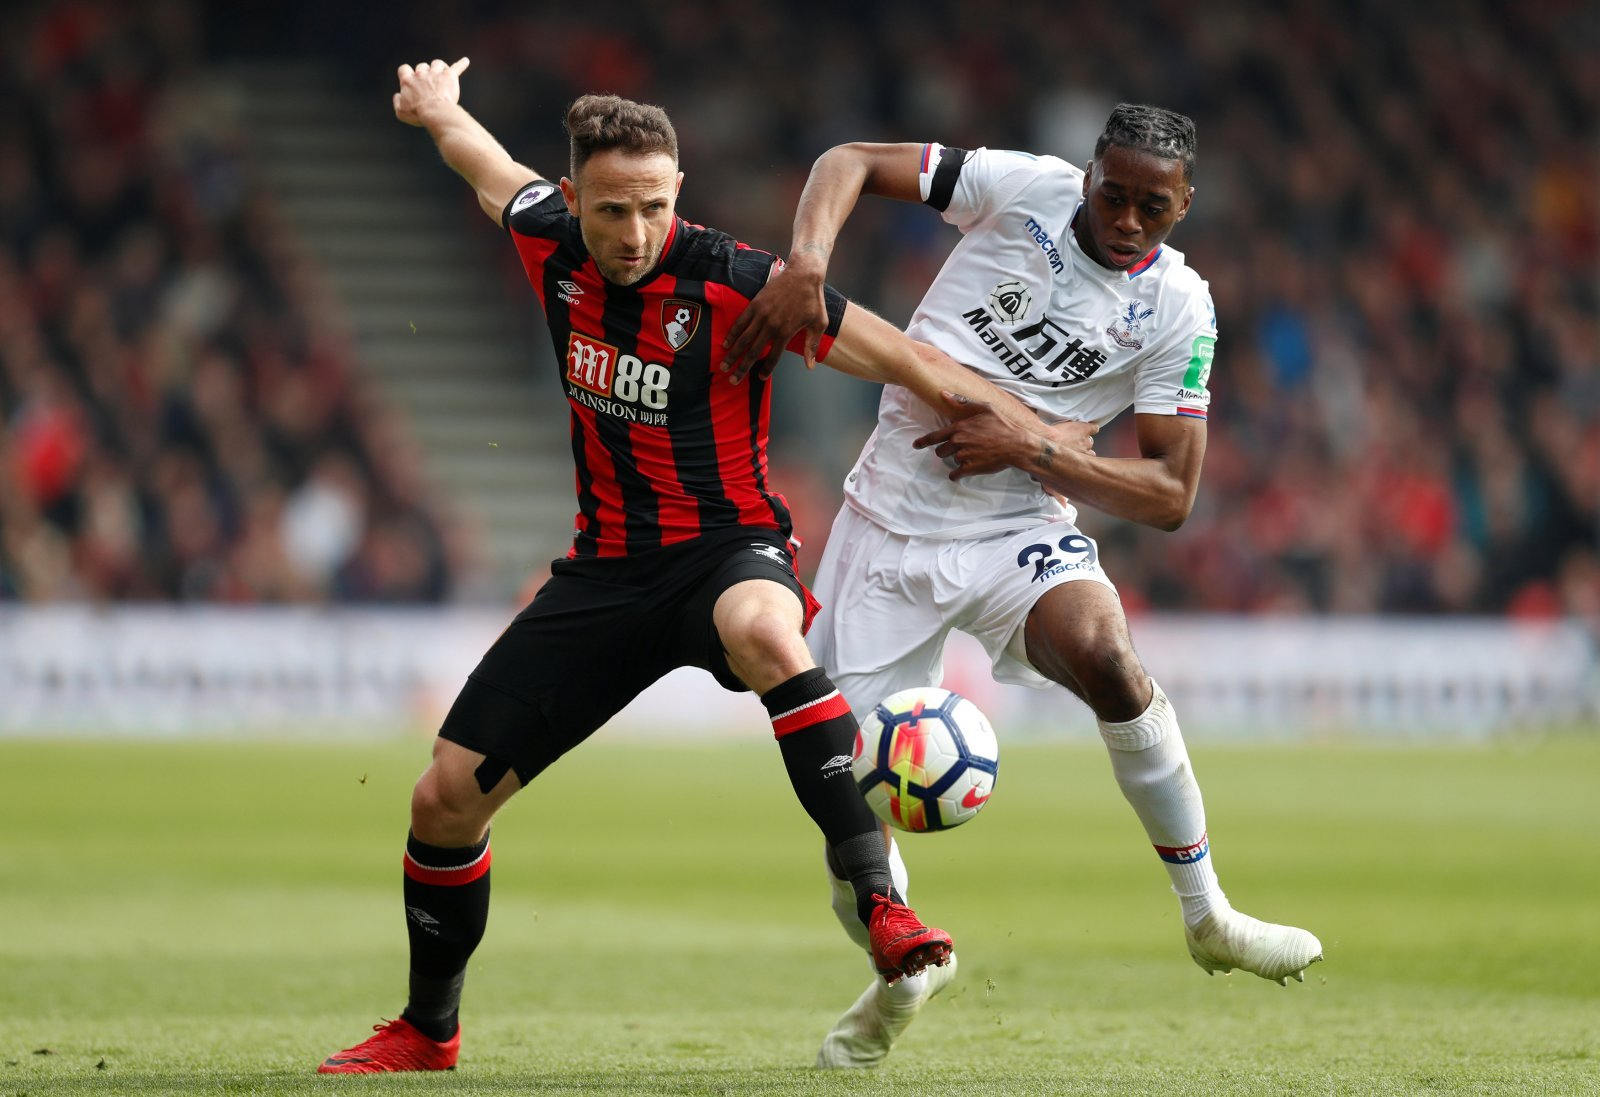 Swap deal for Ademola Lookman might be too good to turn down